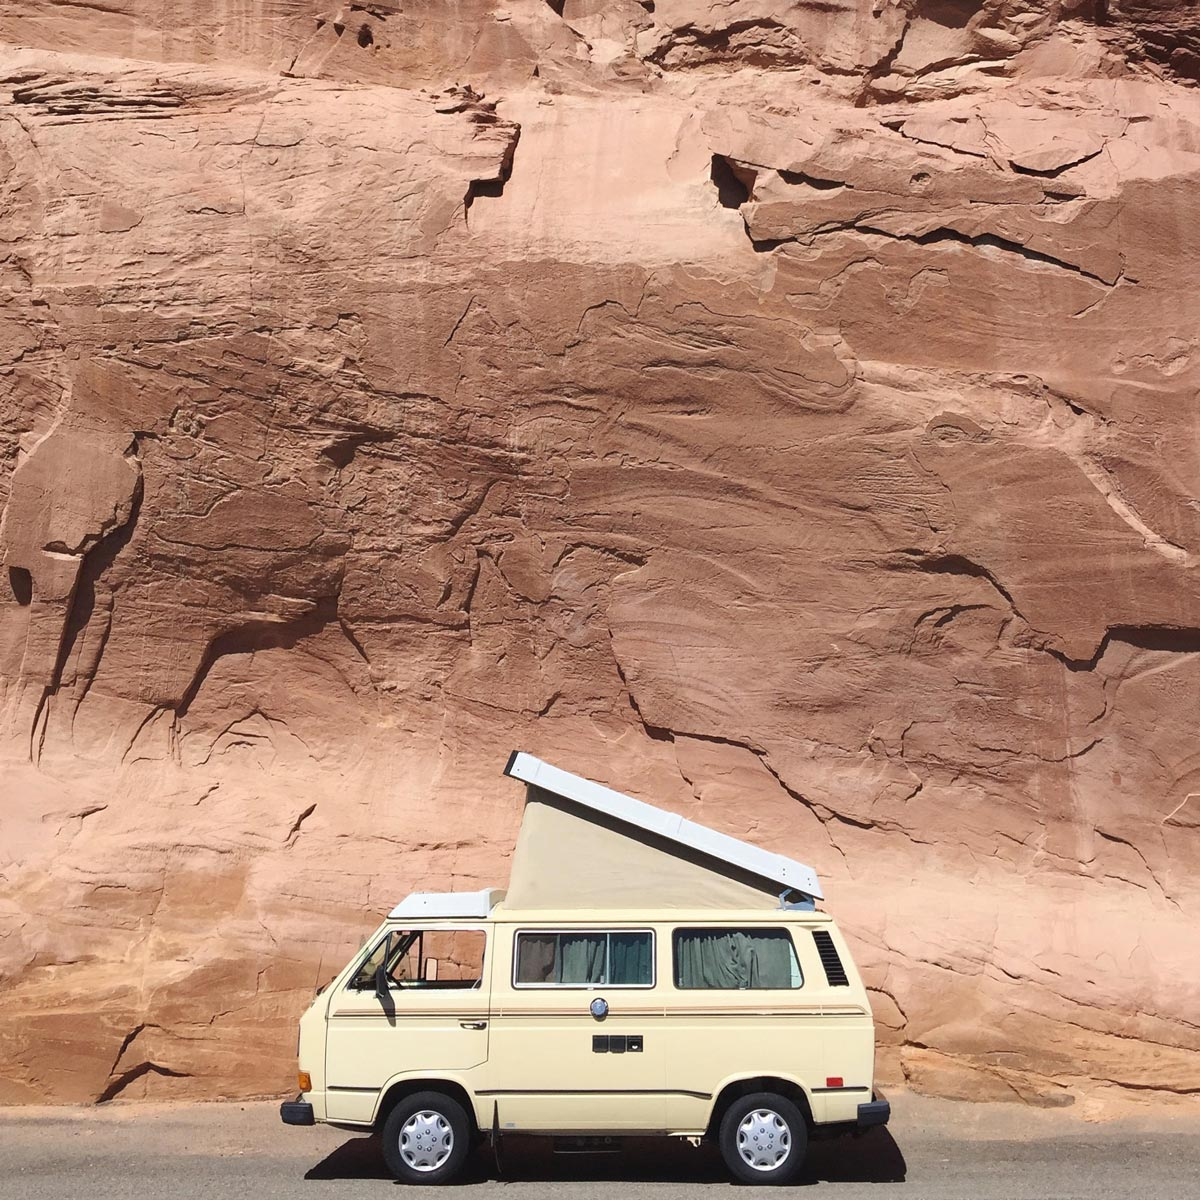 Old van on the side of a rocky highway